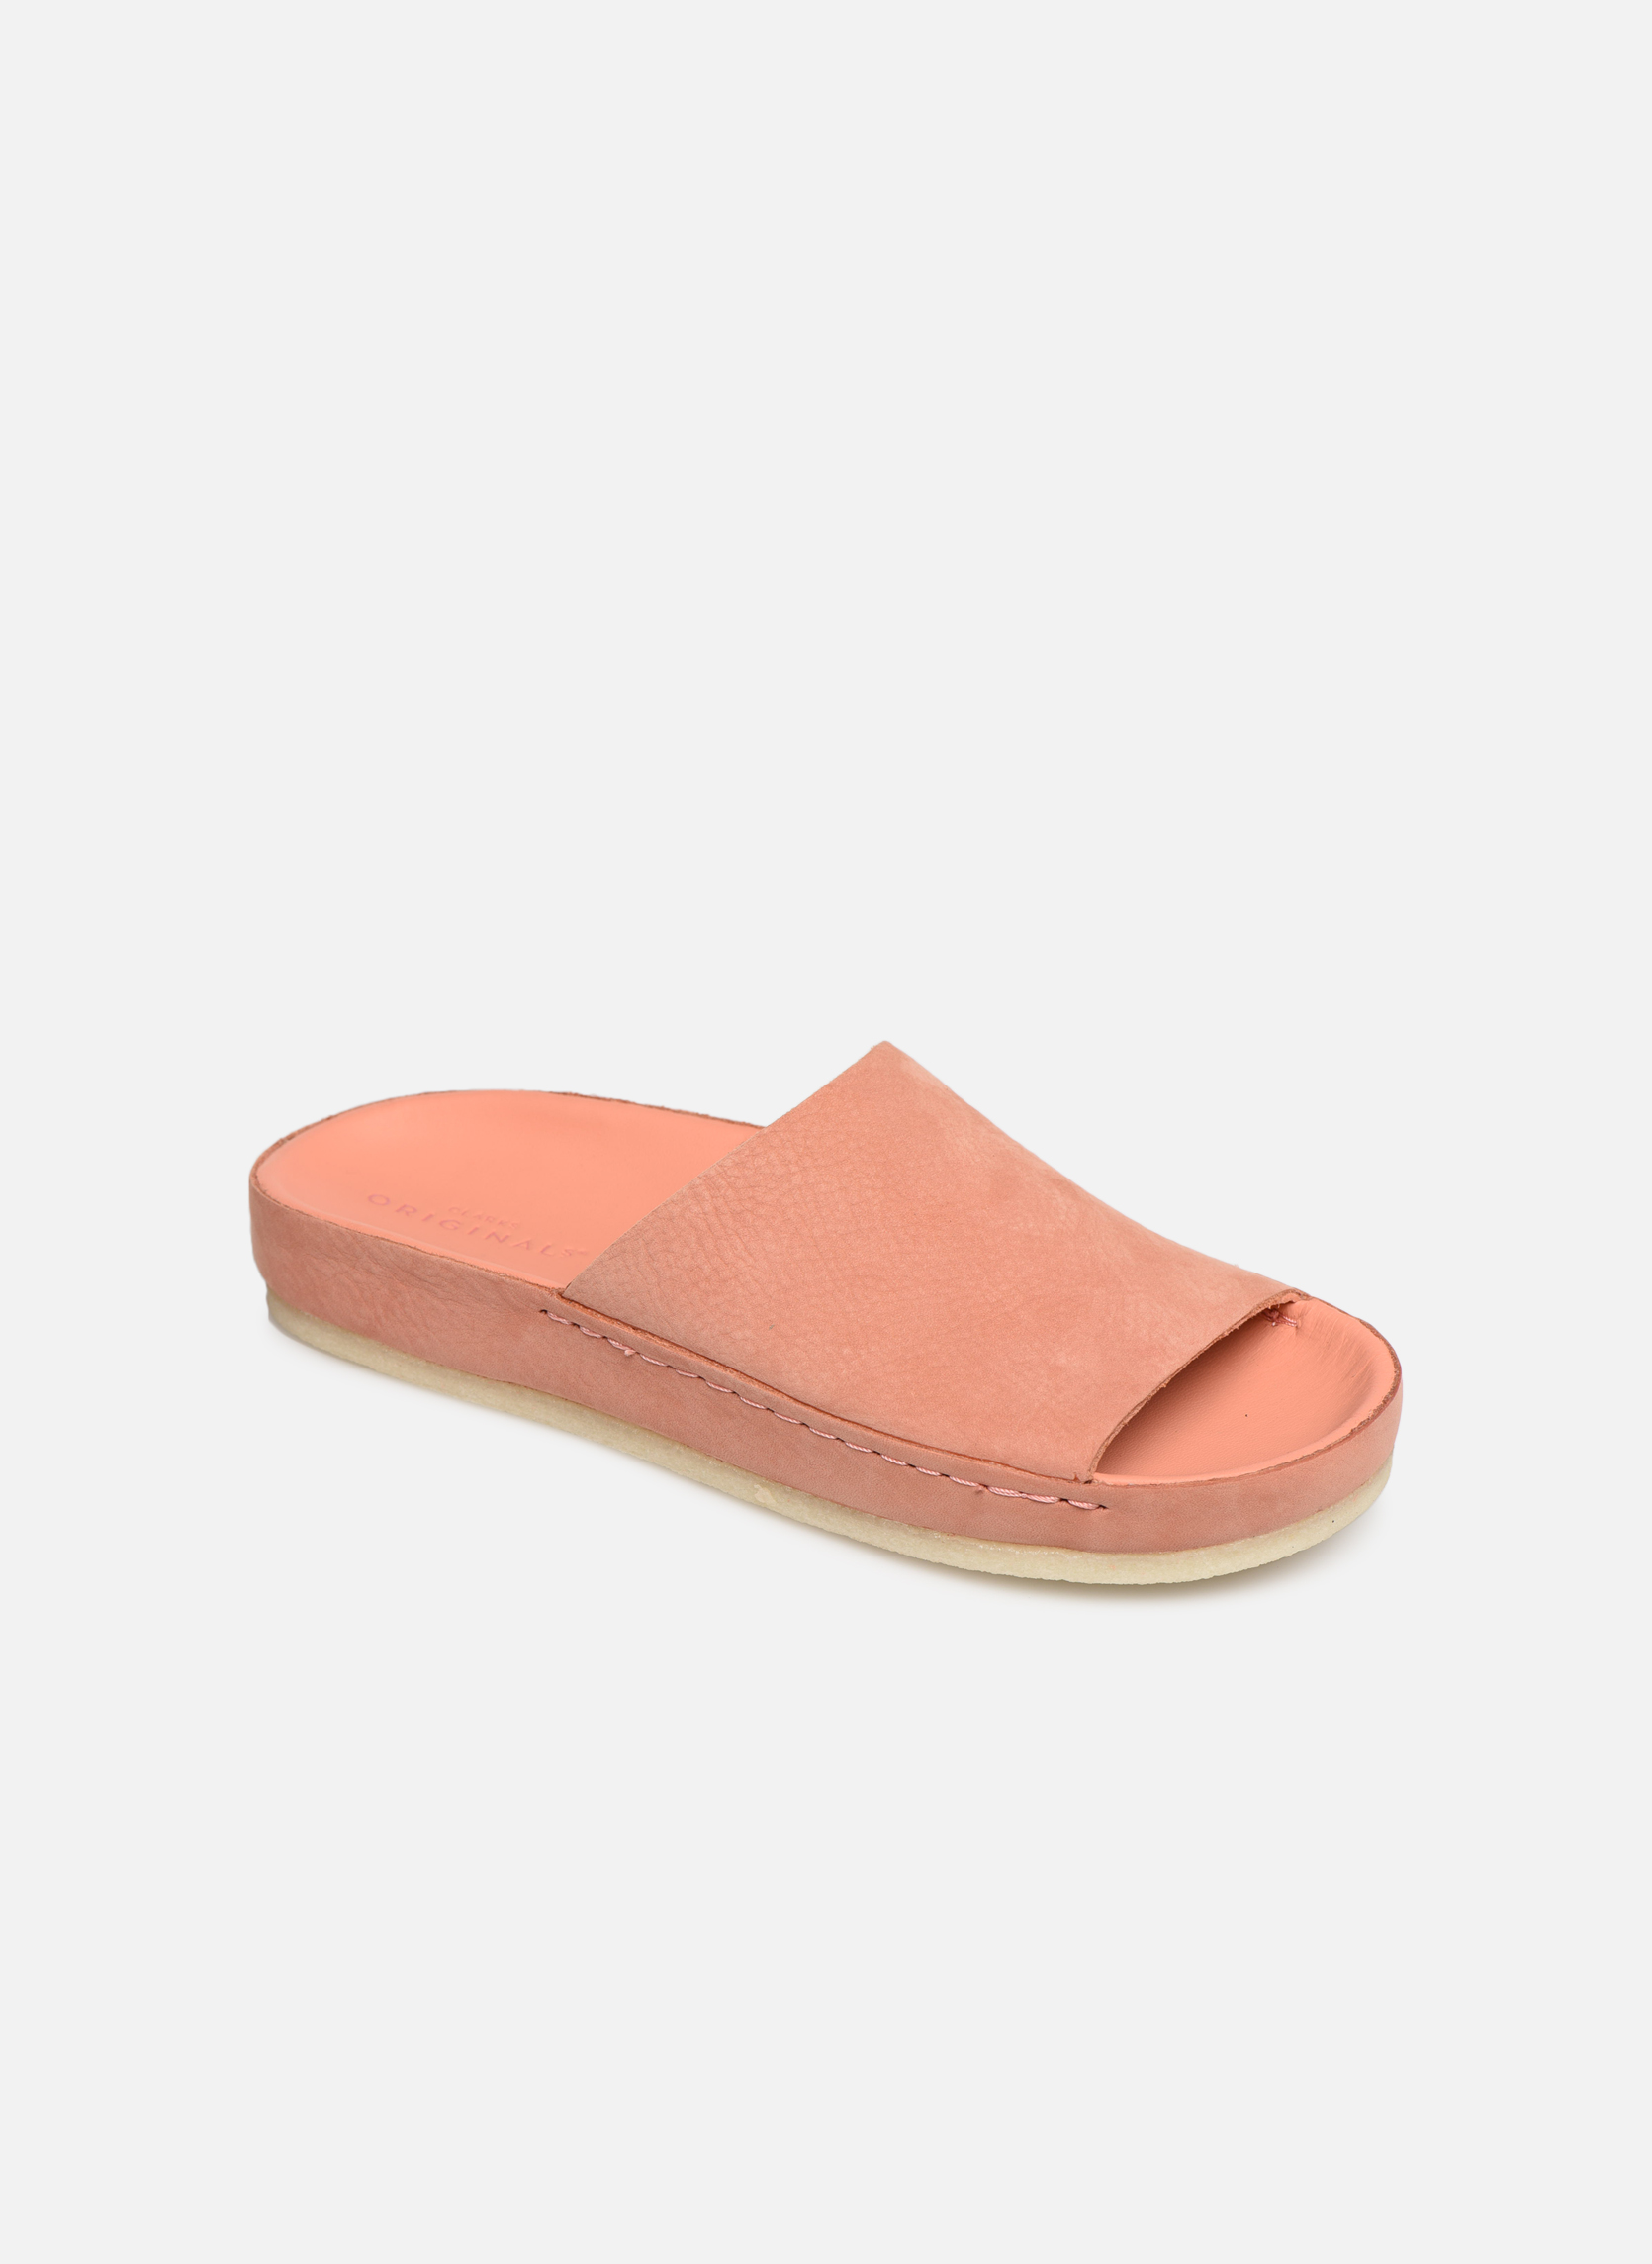 Wedges Clarks Originals Roze